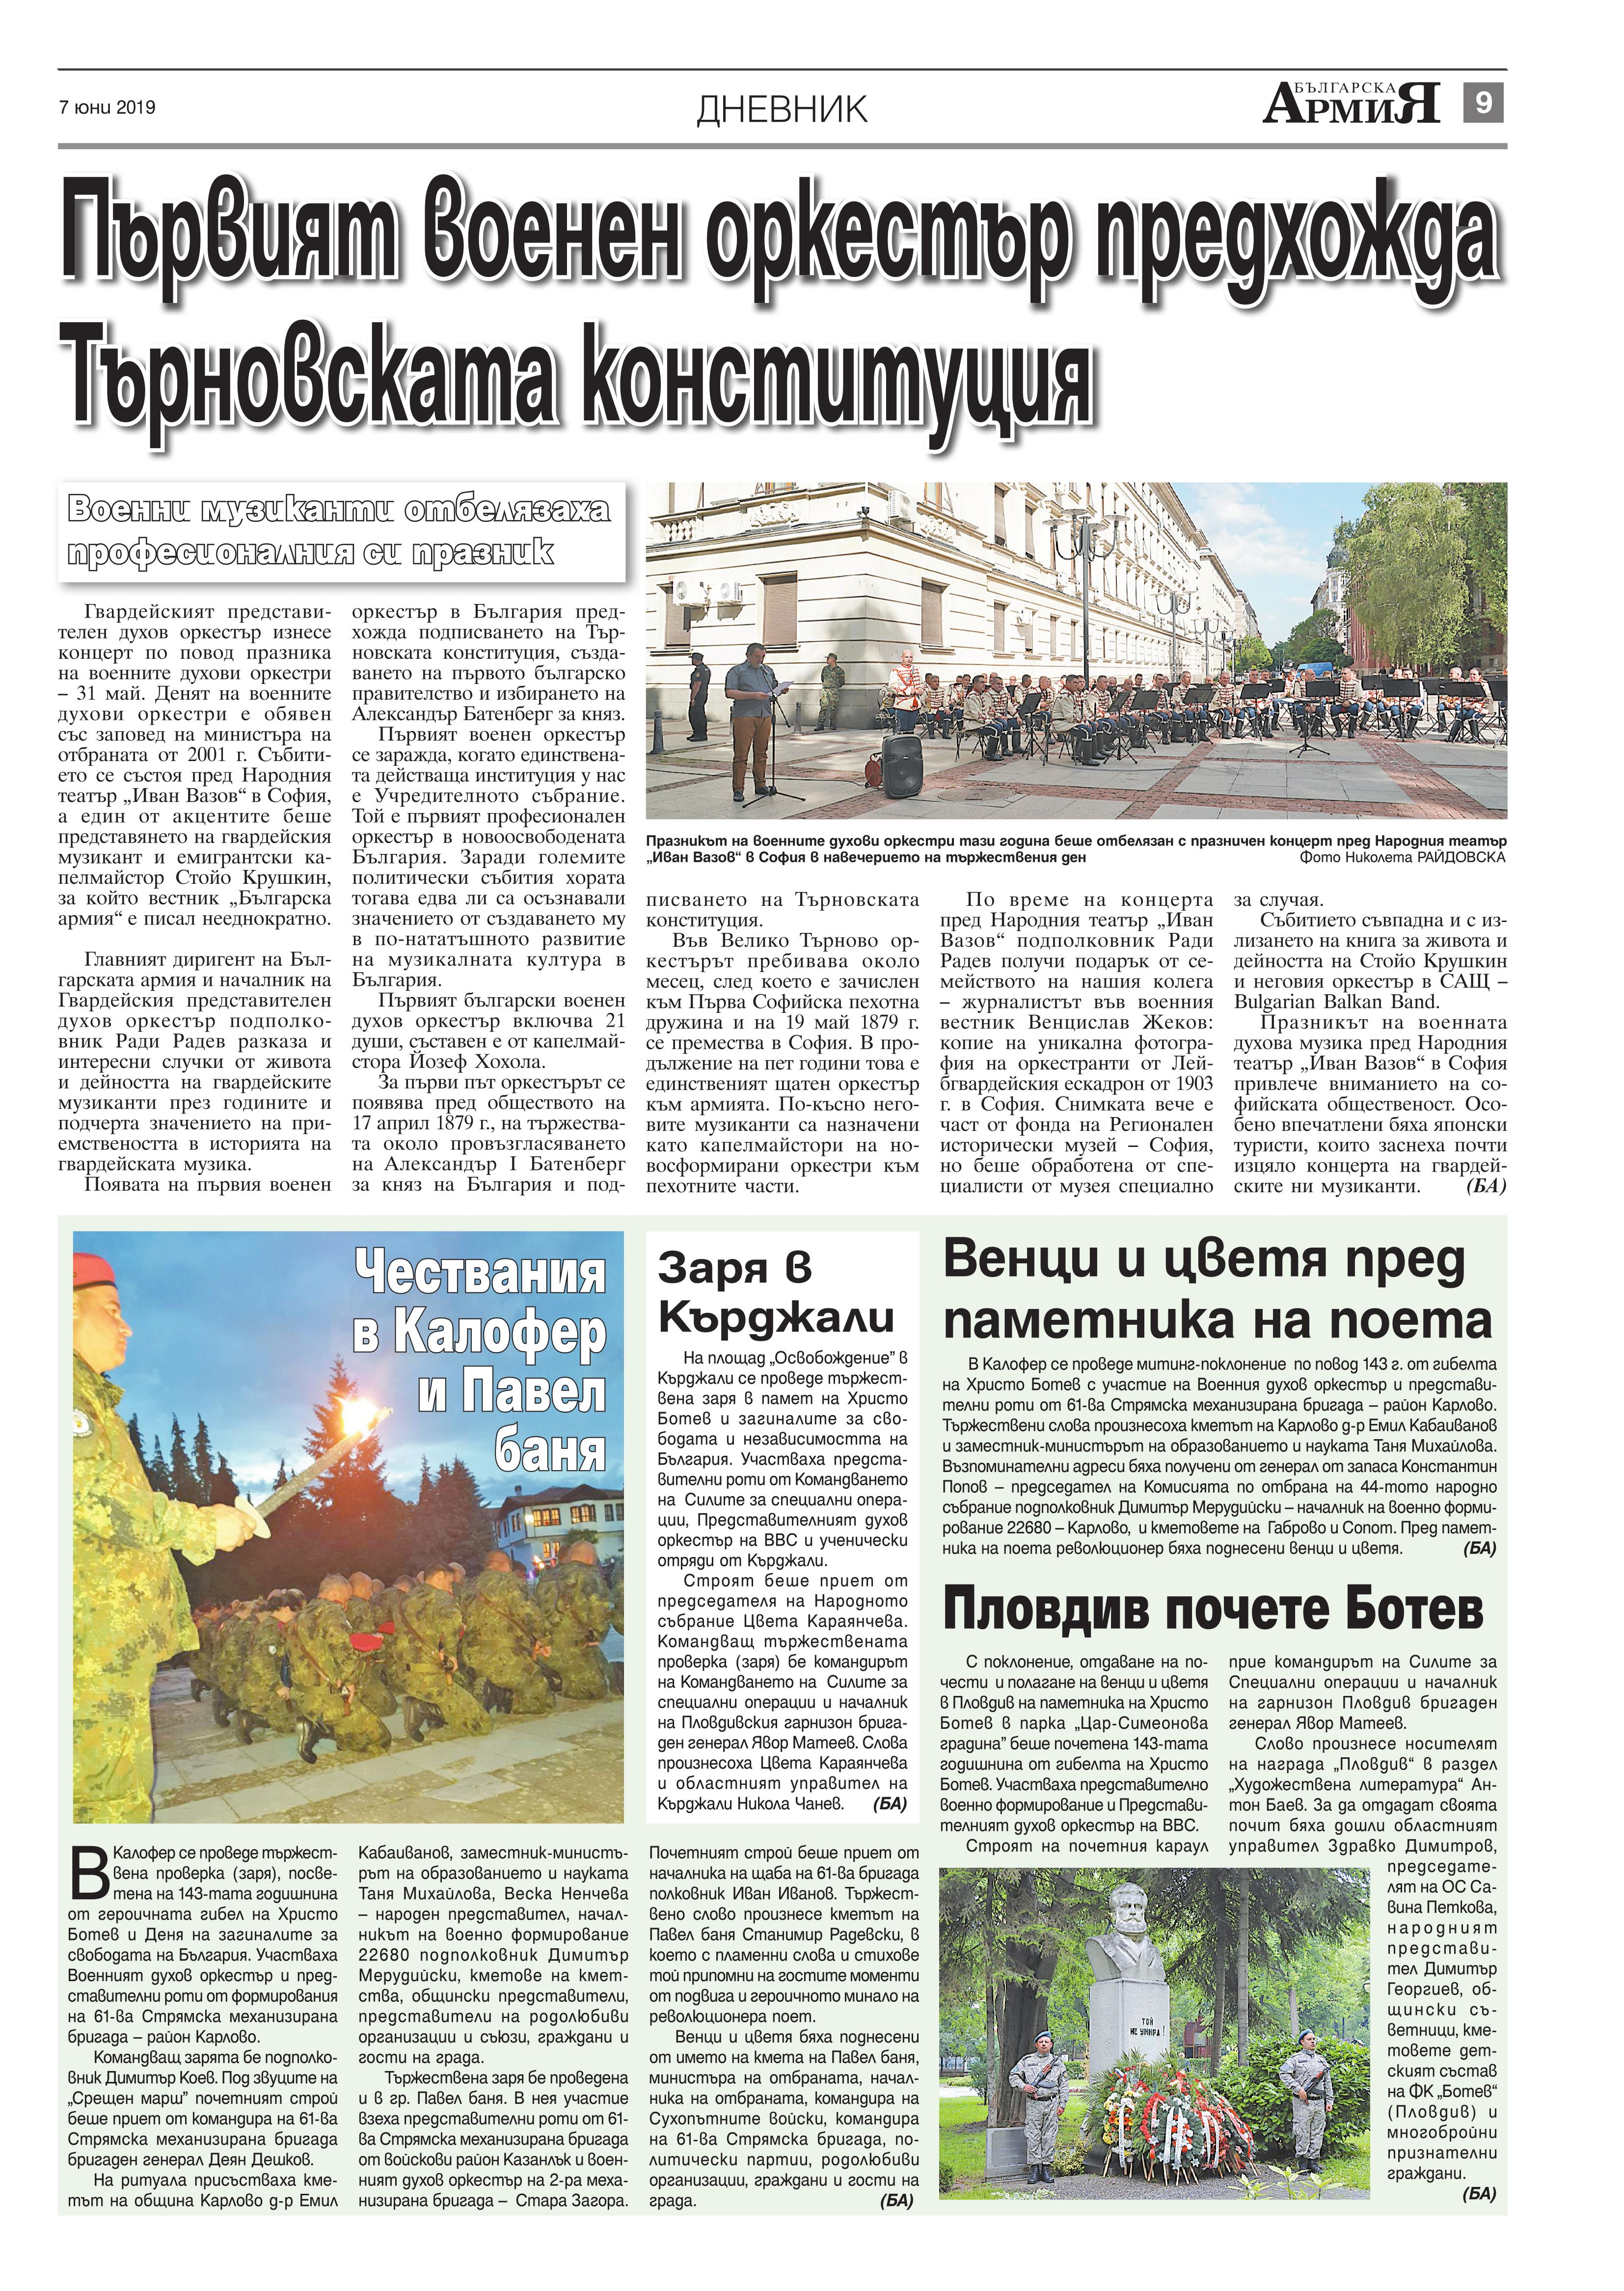 https://armymedia.bg/wp-content/uploads/2015/06/09.page1_-96.jpg